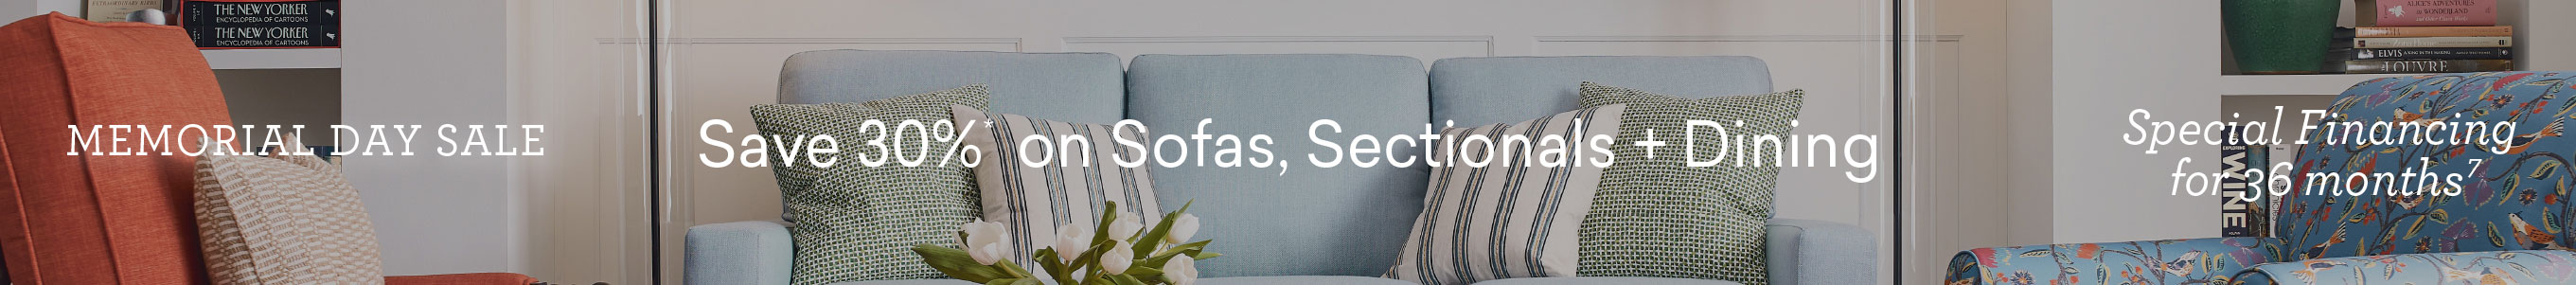 memorial day sale save 30% on sofas sectional and dining special financing 35 months